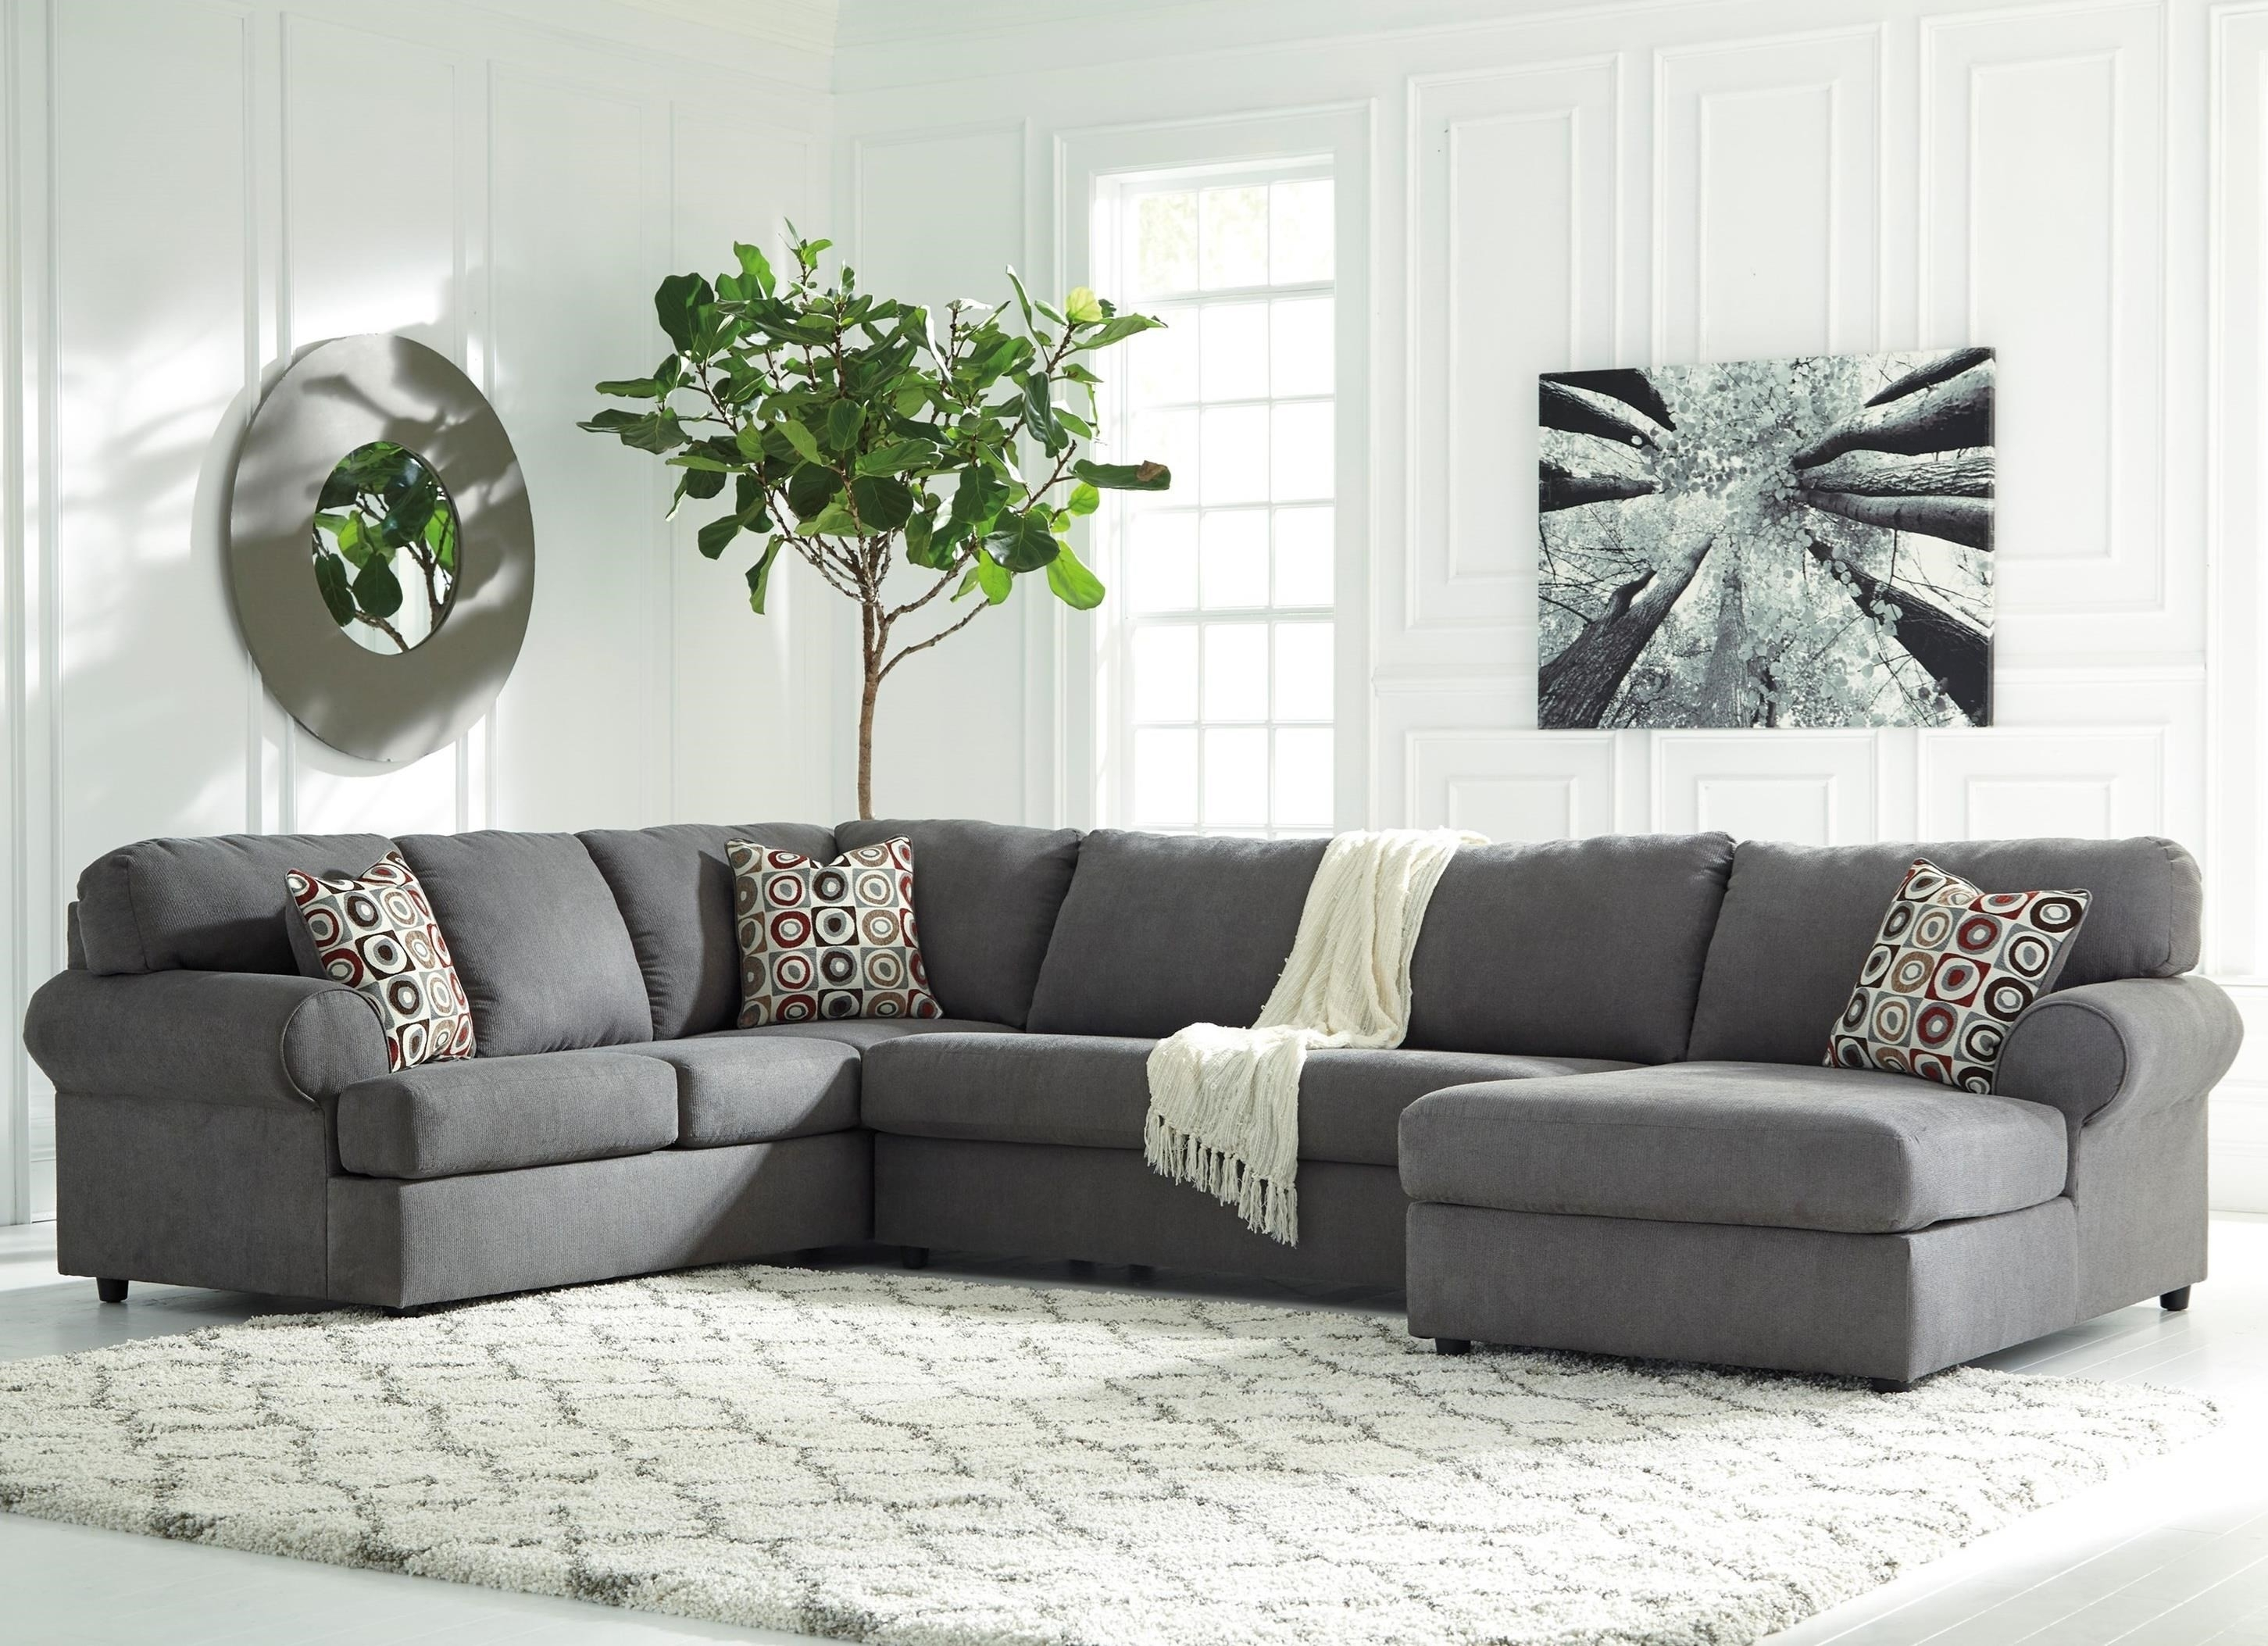 3 Piece Sectional With Chaise Meyer W Raf Living Spaces 87980 2 Jpg Inside Meyer 3 Piece Sectionals With Laf Chaise (View 14 of 25)